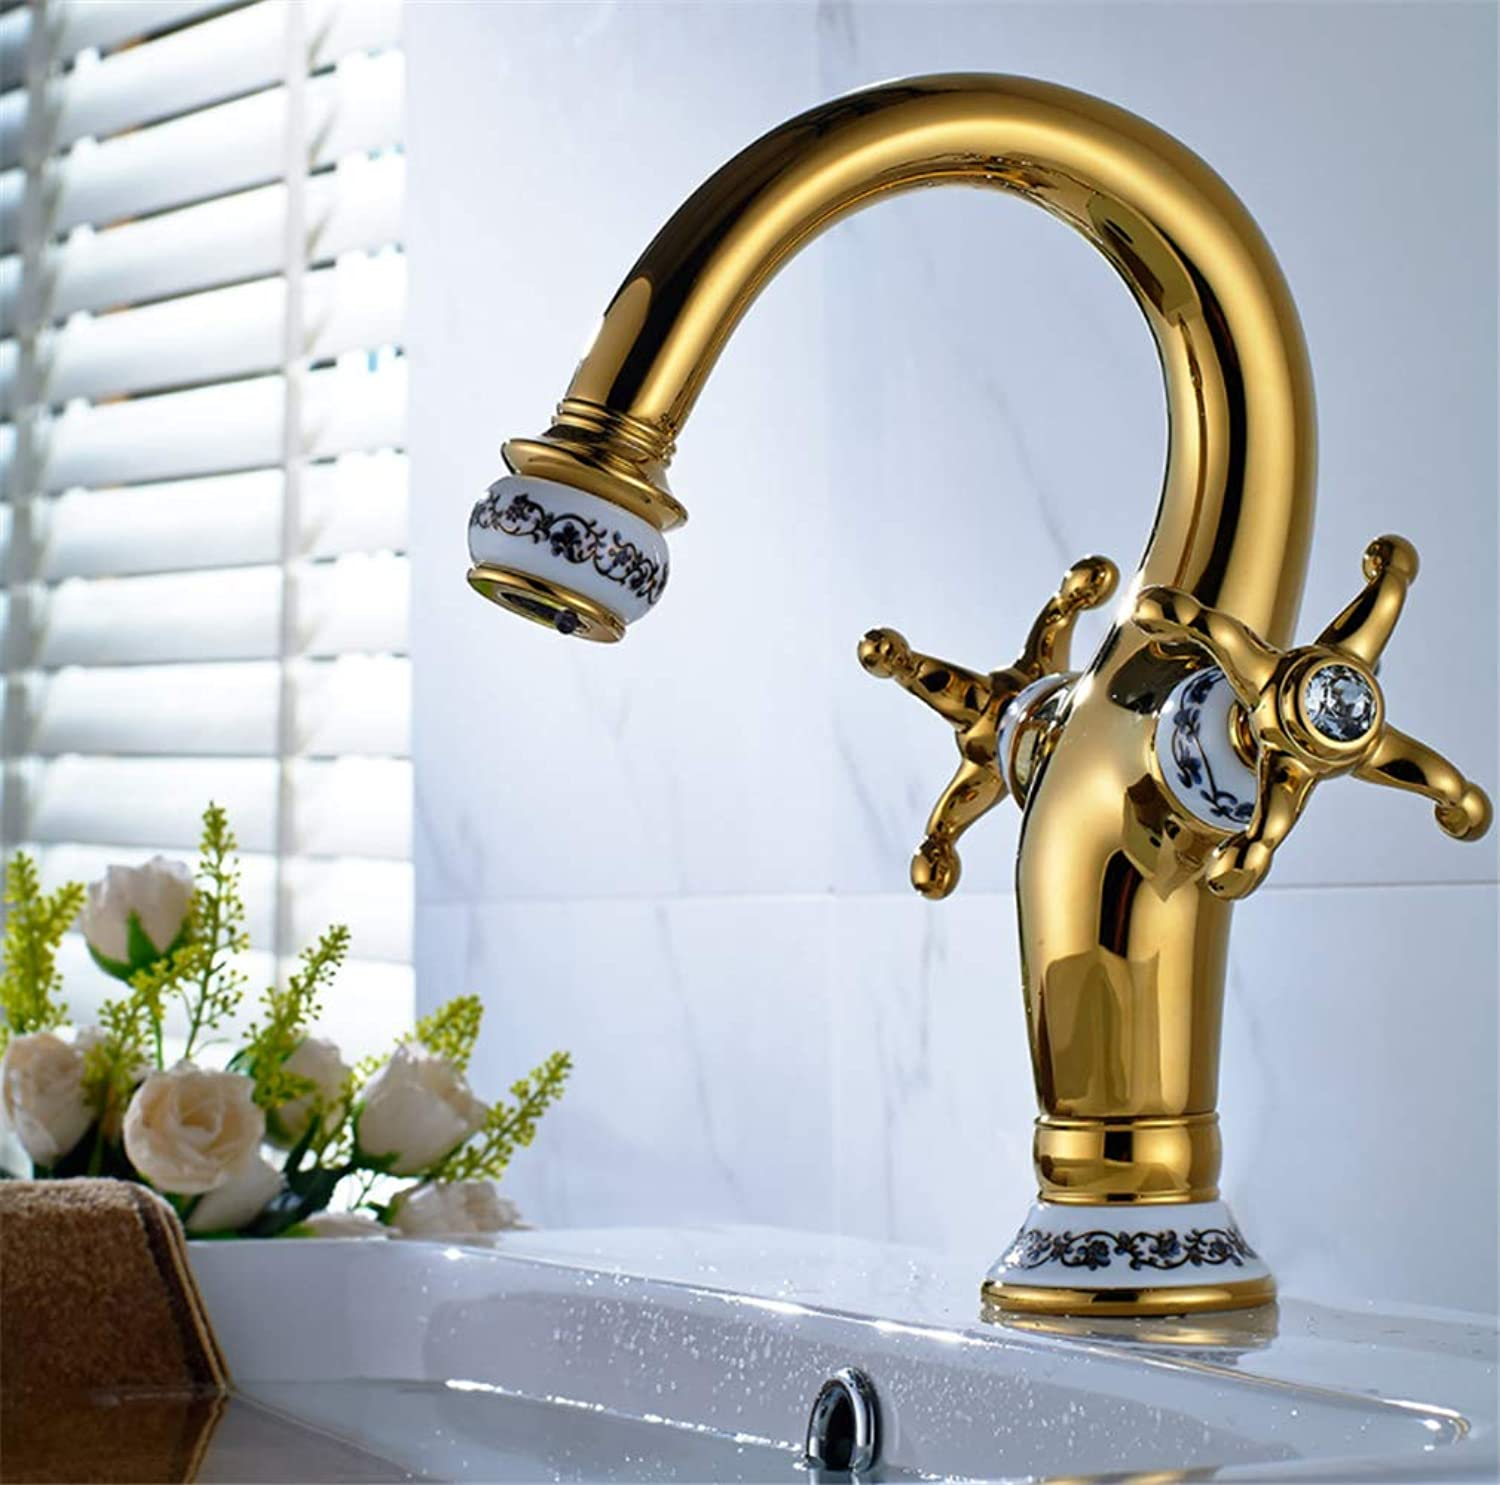 Basin Mixer Tap Bath Fixtures Wash Basinsinkkitchen All Copper gold-Plated bluee and White Porcelain Double Handed Hot and Cold Bathroom Bathtub Faucet gold Ceramic Washbasin Faucet